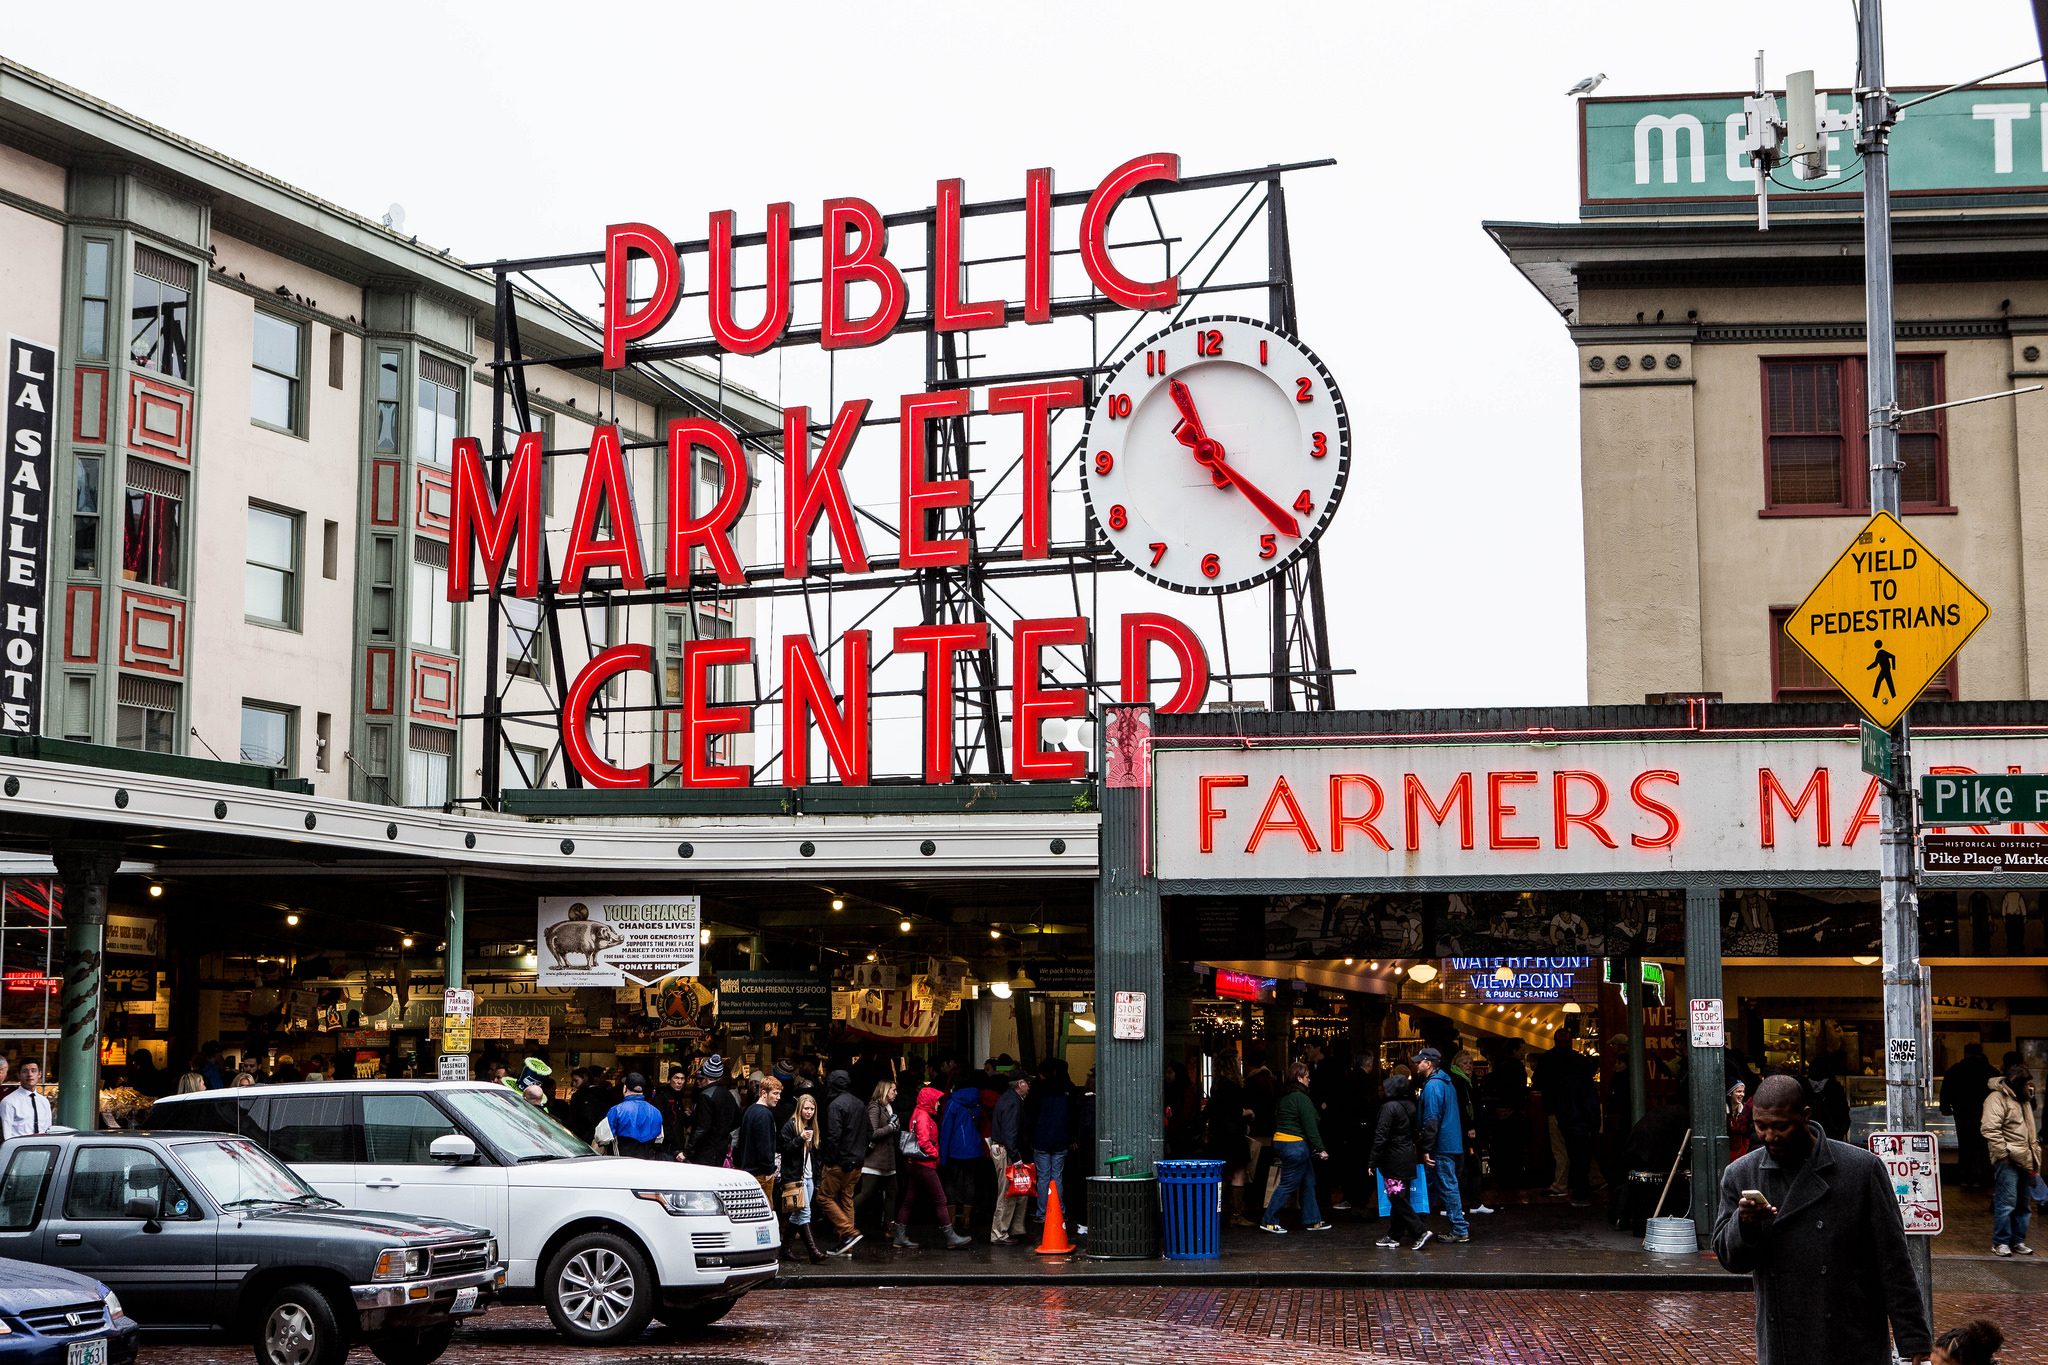 Pike Place Market. Photo: Suman Chakrabarti / Flickr CC